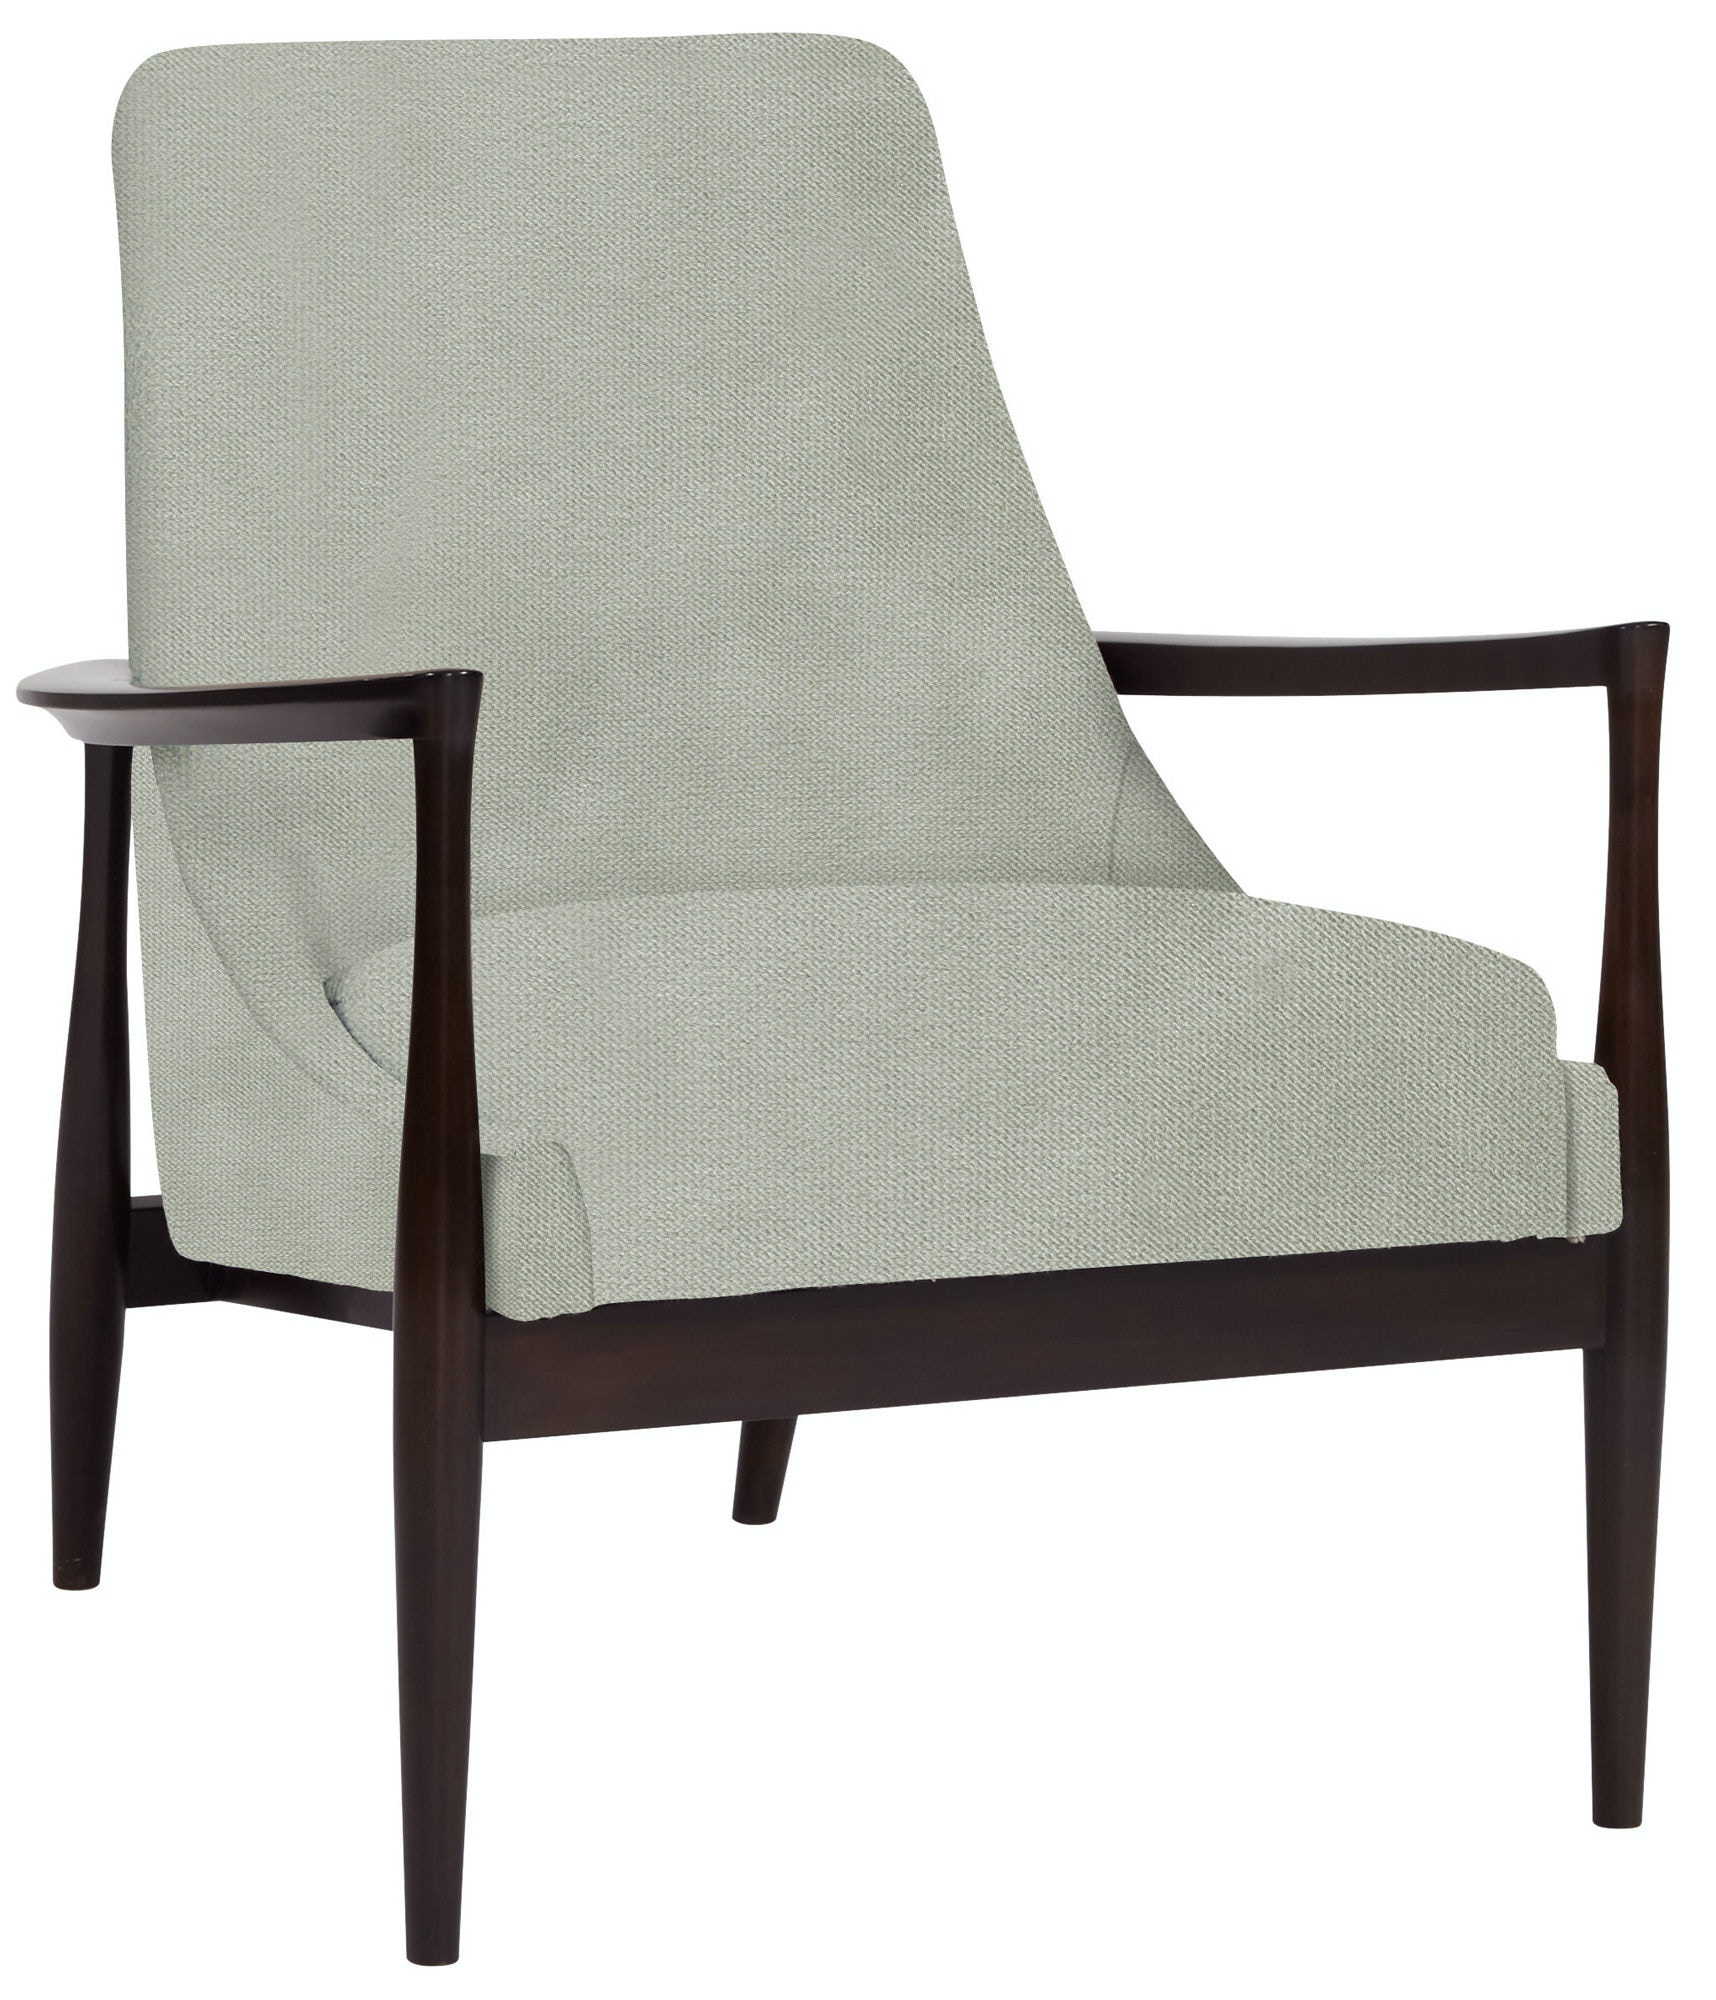 Bernhardt Chair B3013